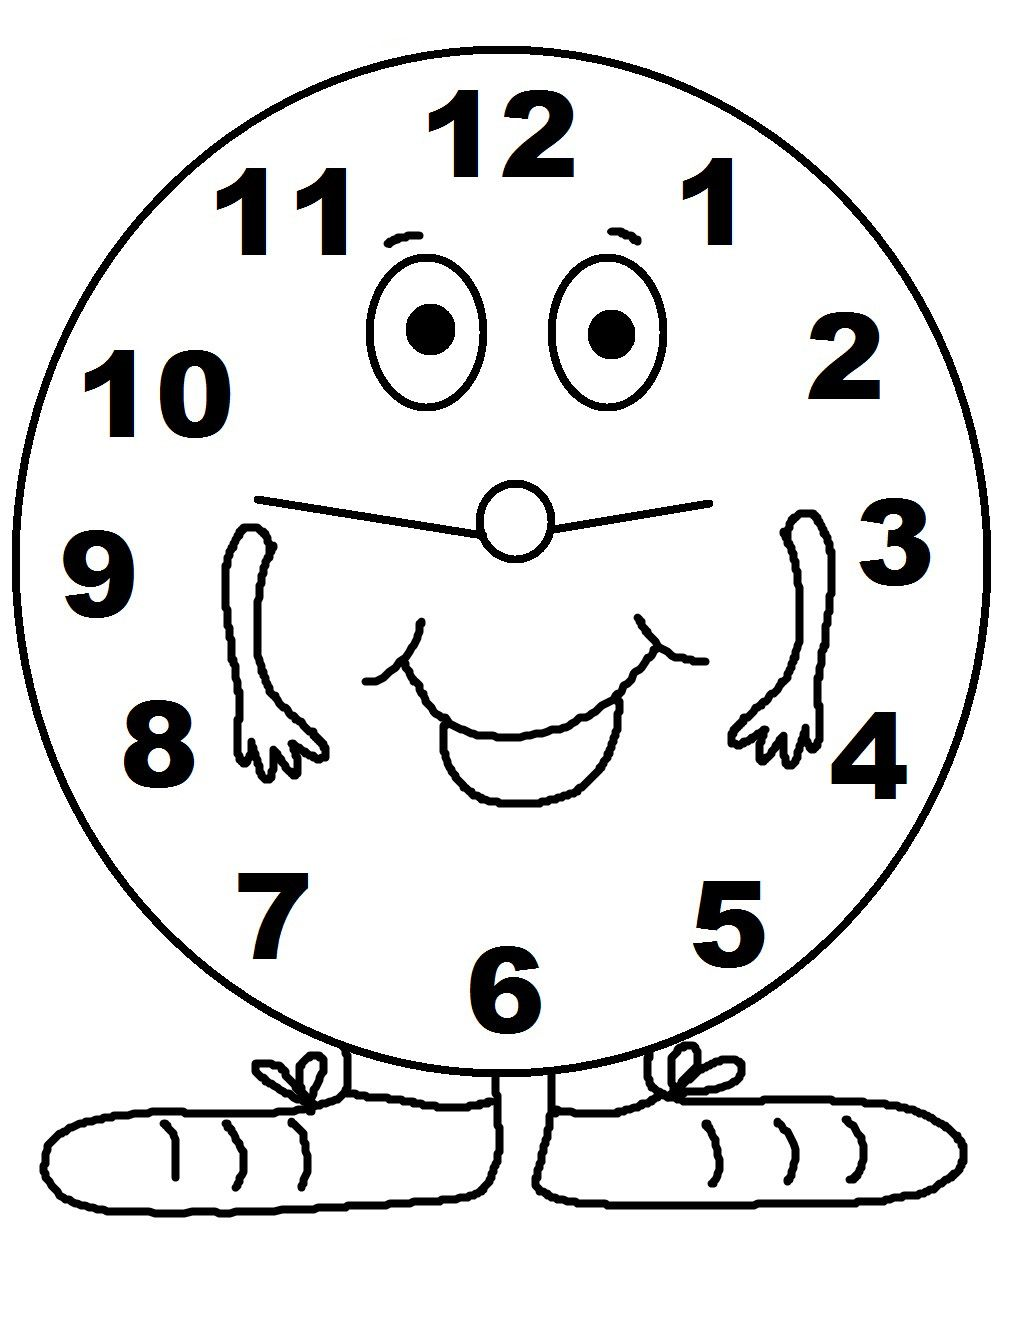 Relojes Animados Para Pintar Buscar Con Google Bear Coloring Pages Coloring Pages Coloring Pages For Kids